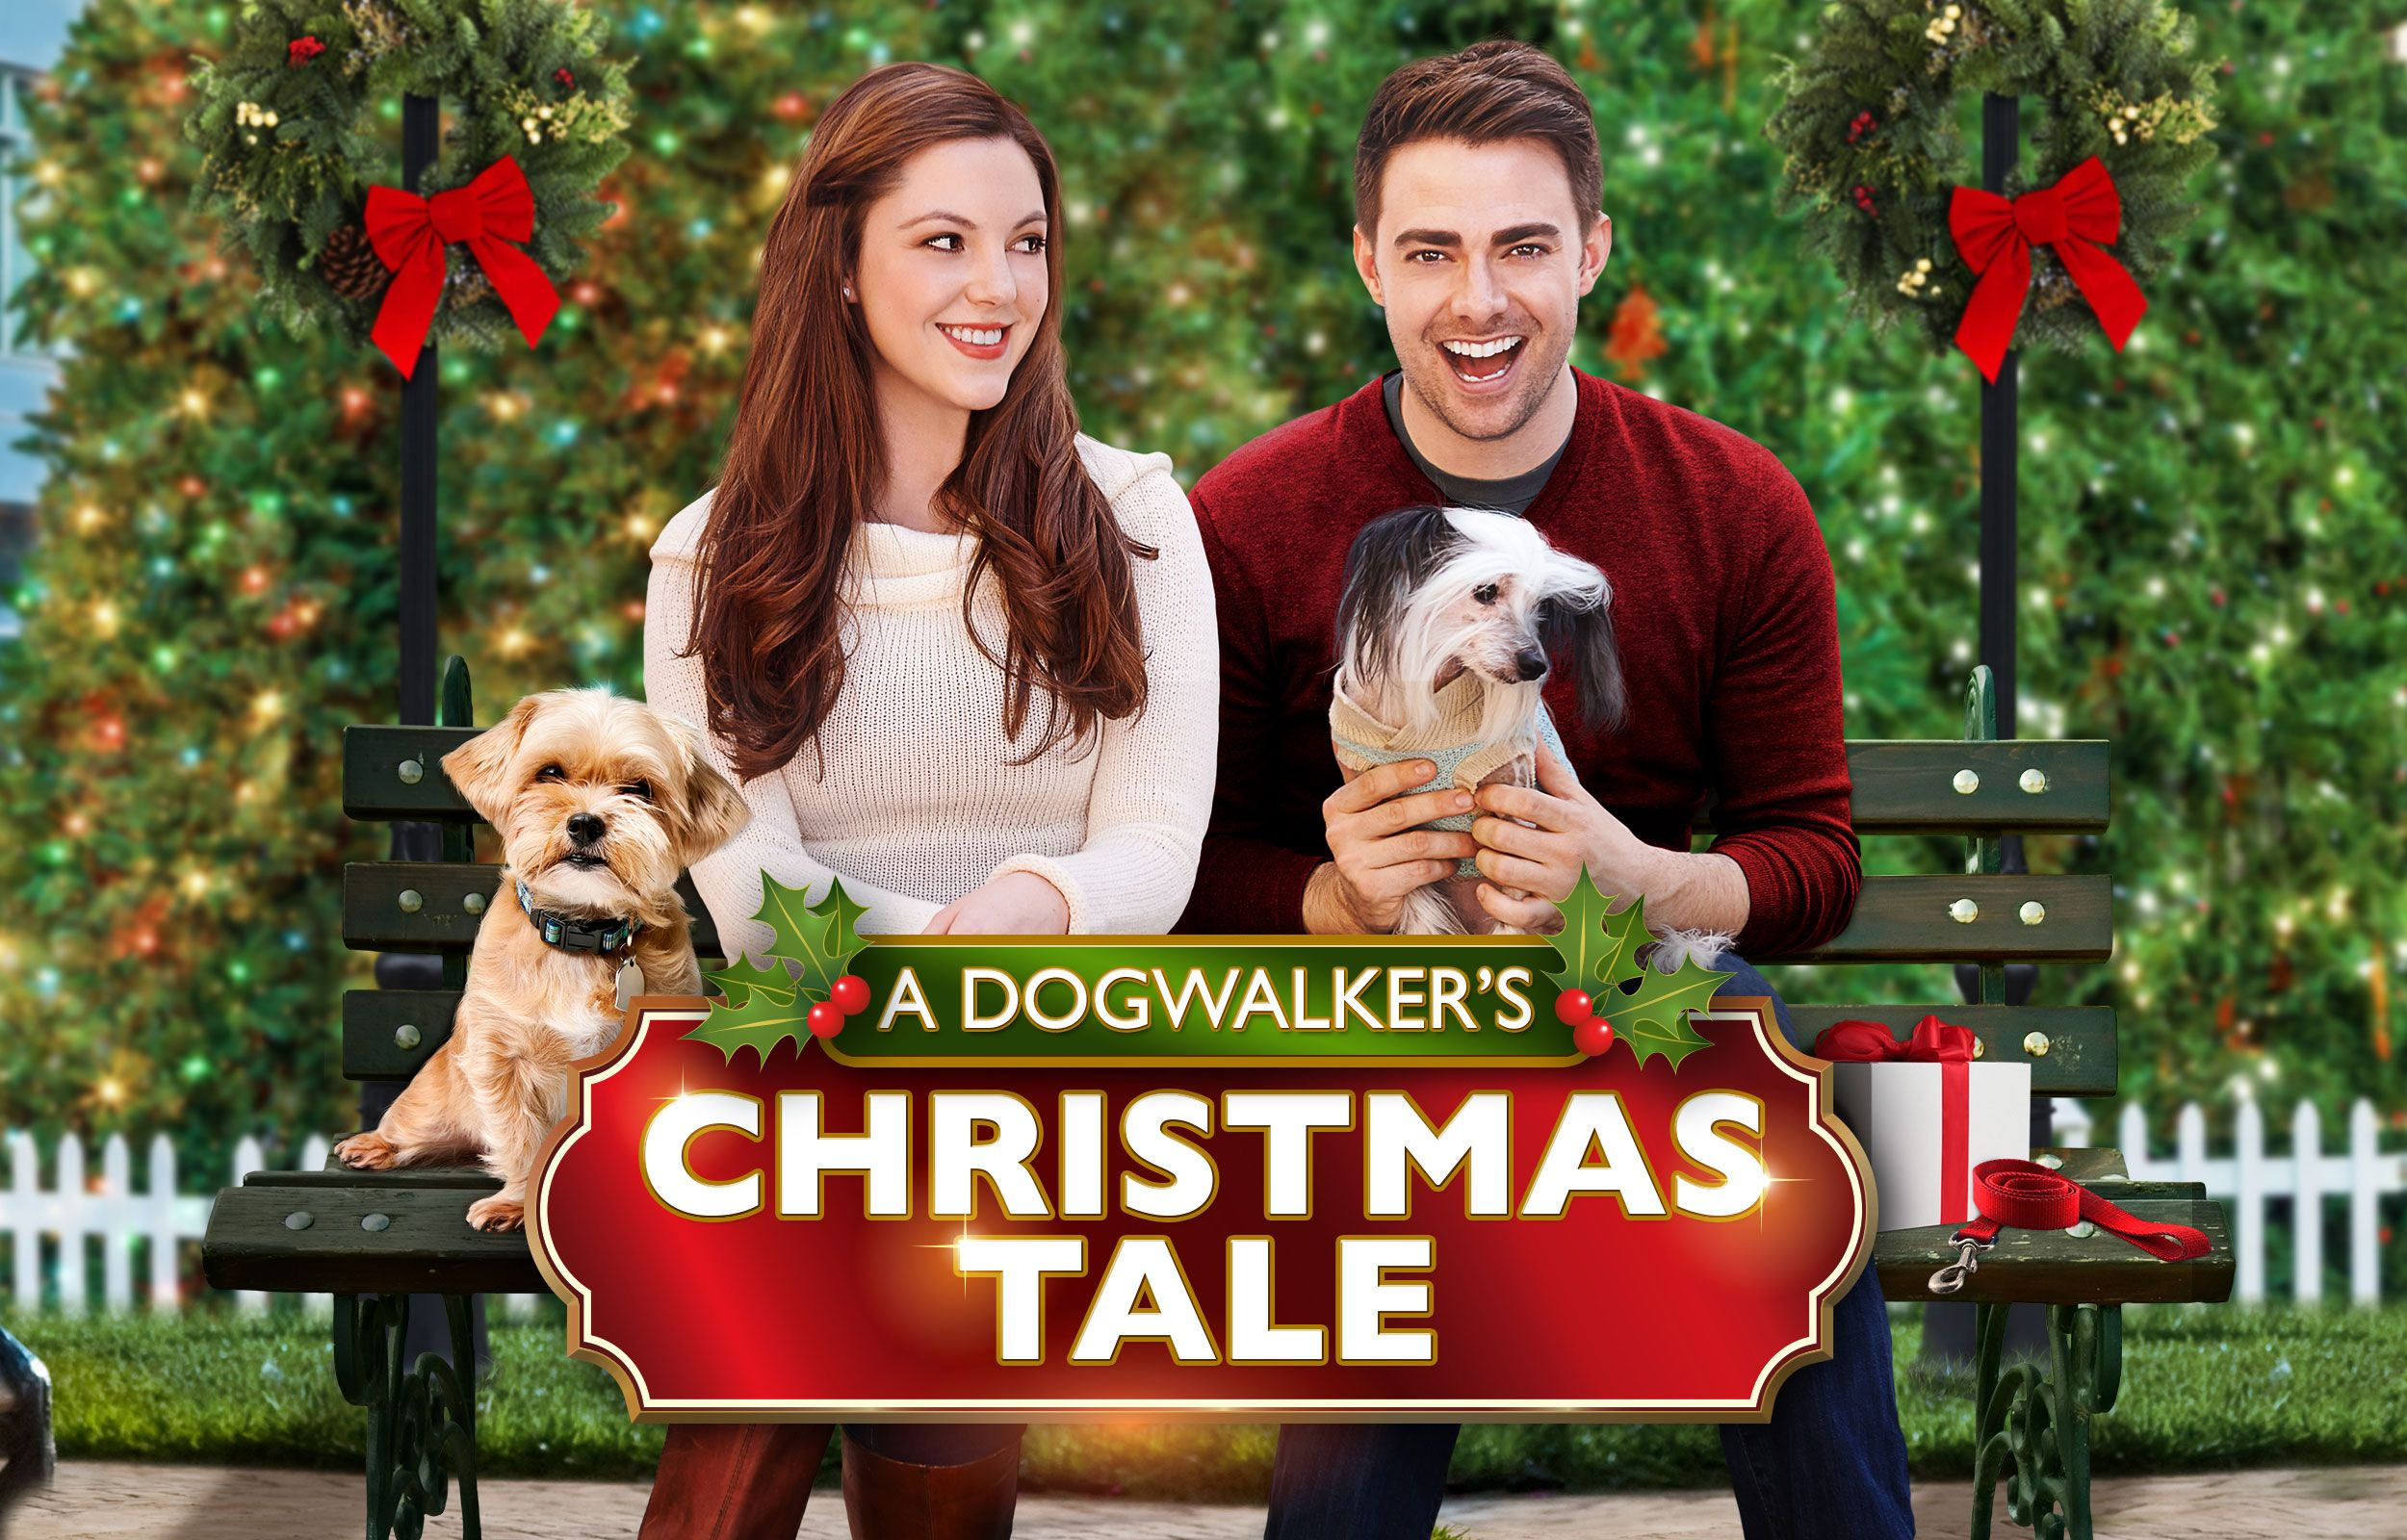 A Dogwalker S Christmas Tale Uptv Com Uplifting Entertainment Family Movies Tv Series Music Christmas Tale Family Movies Movies